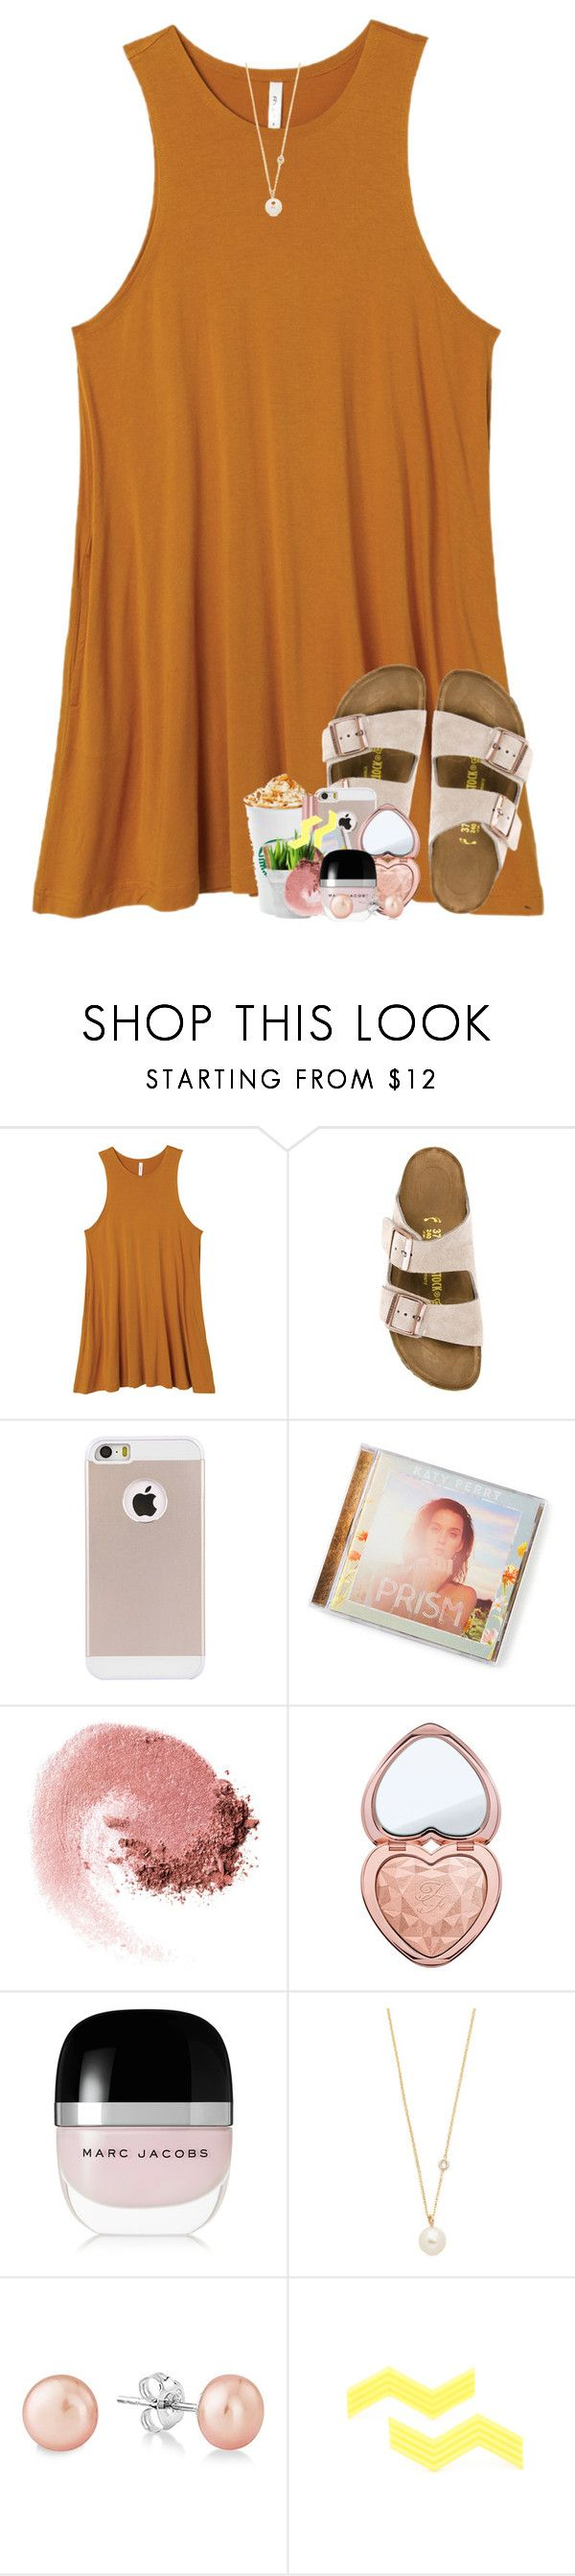 """can we all just take a moment to appreciate halsey's new song like wow "" by emilyandella ❤ liked on Polyvore featuring RVCA, Birkenstock, L'Oréal Paris, NARS Cosmetics, Too Faced Cosmetics, Marc Jacobs and ZoÃ« Chicco"